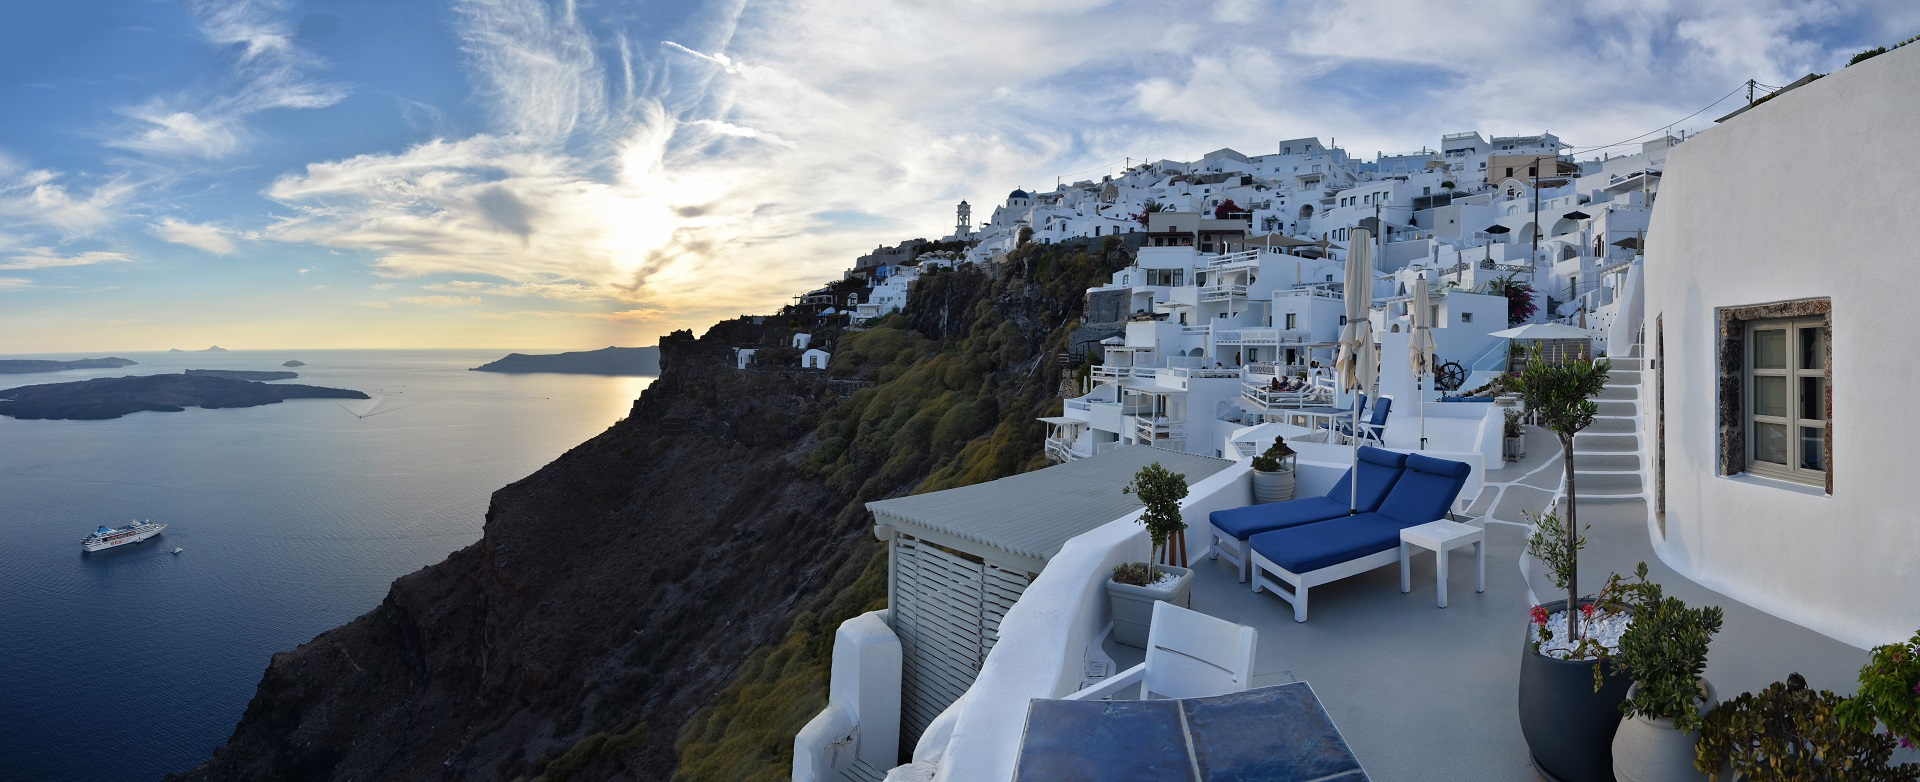 7 Must Visit Places in Europe For a Truly Unique Experience